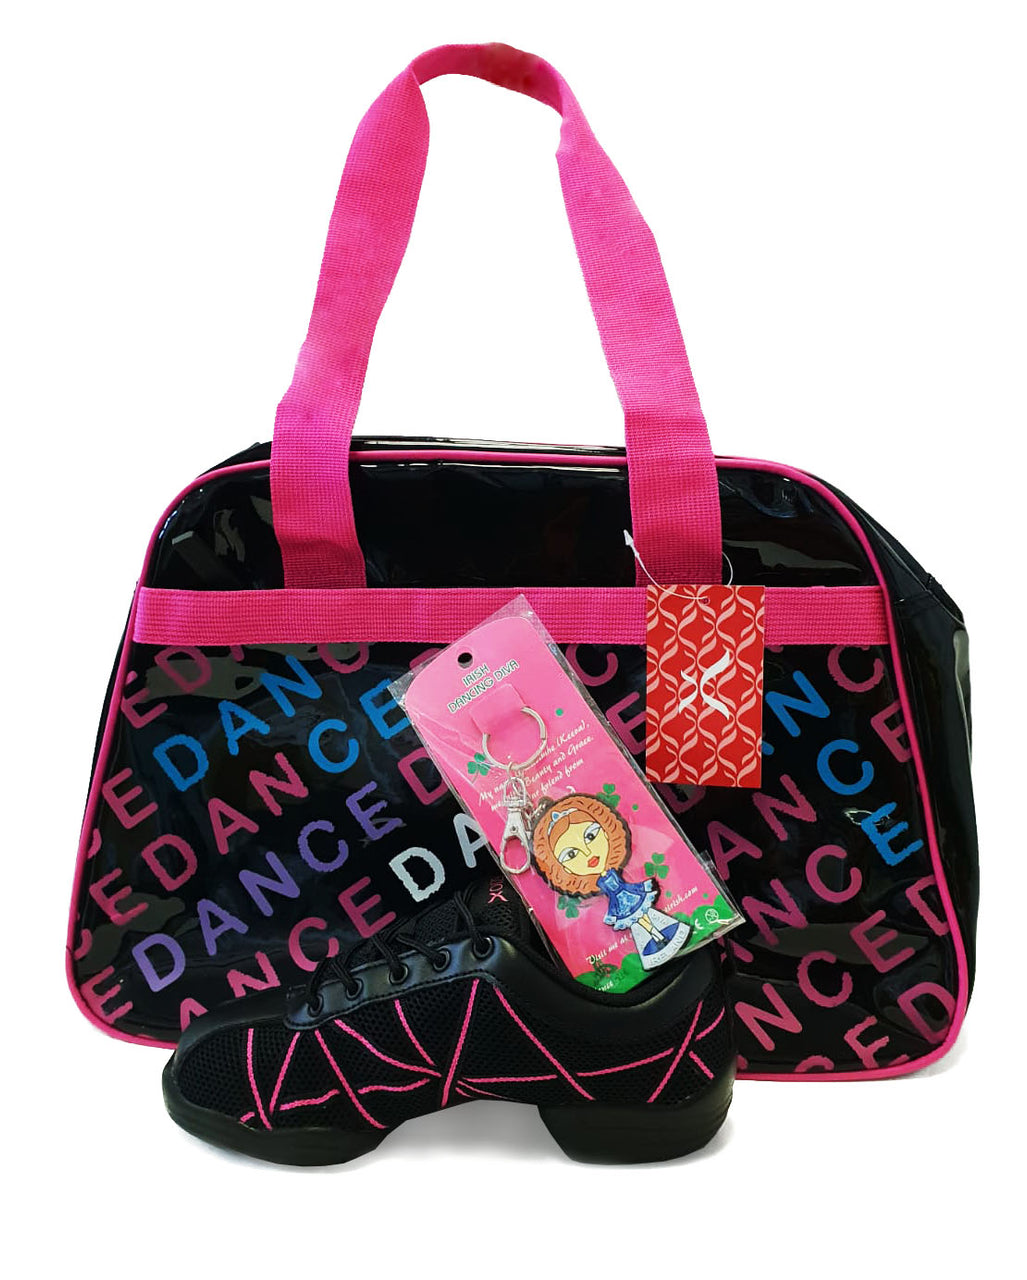 Irish_Dancing_Patent_Bag_Capezio_gift_set_idanceirish_jpeg